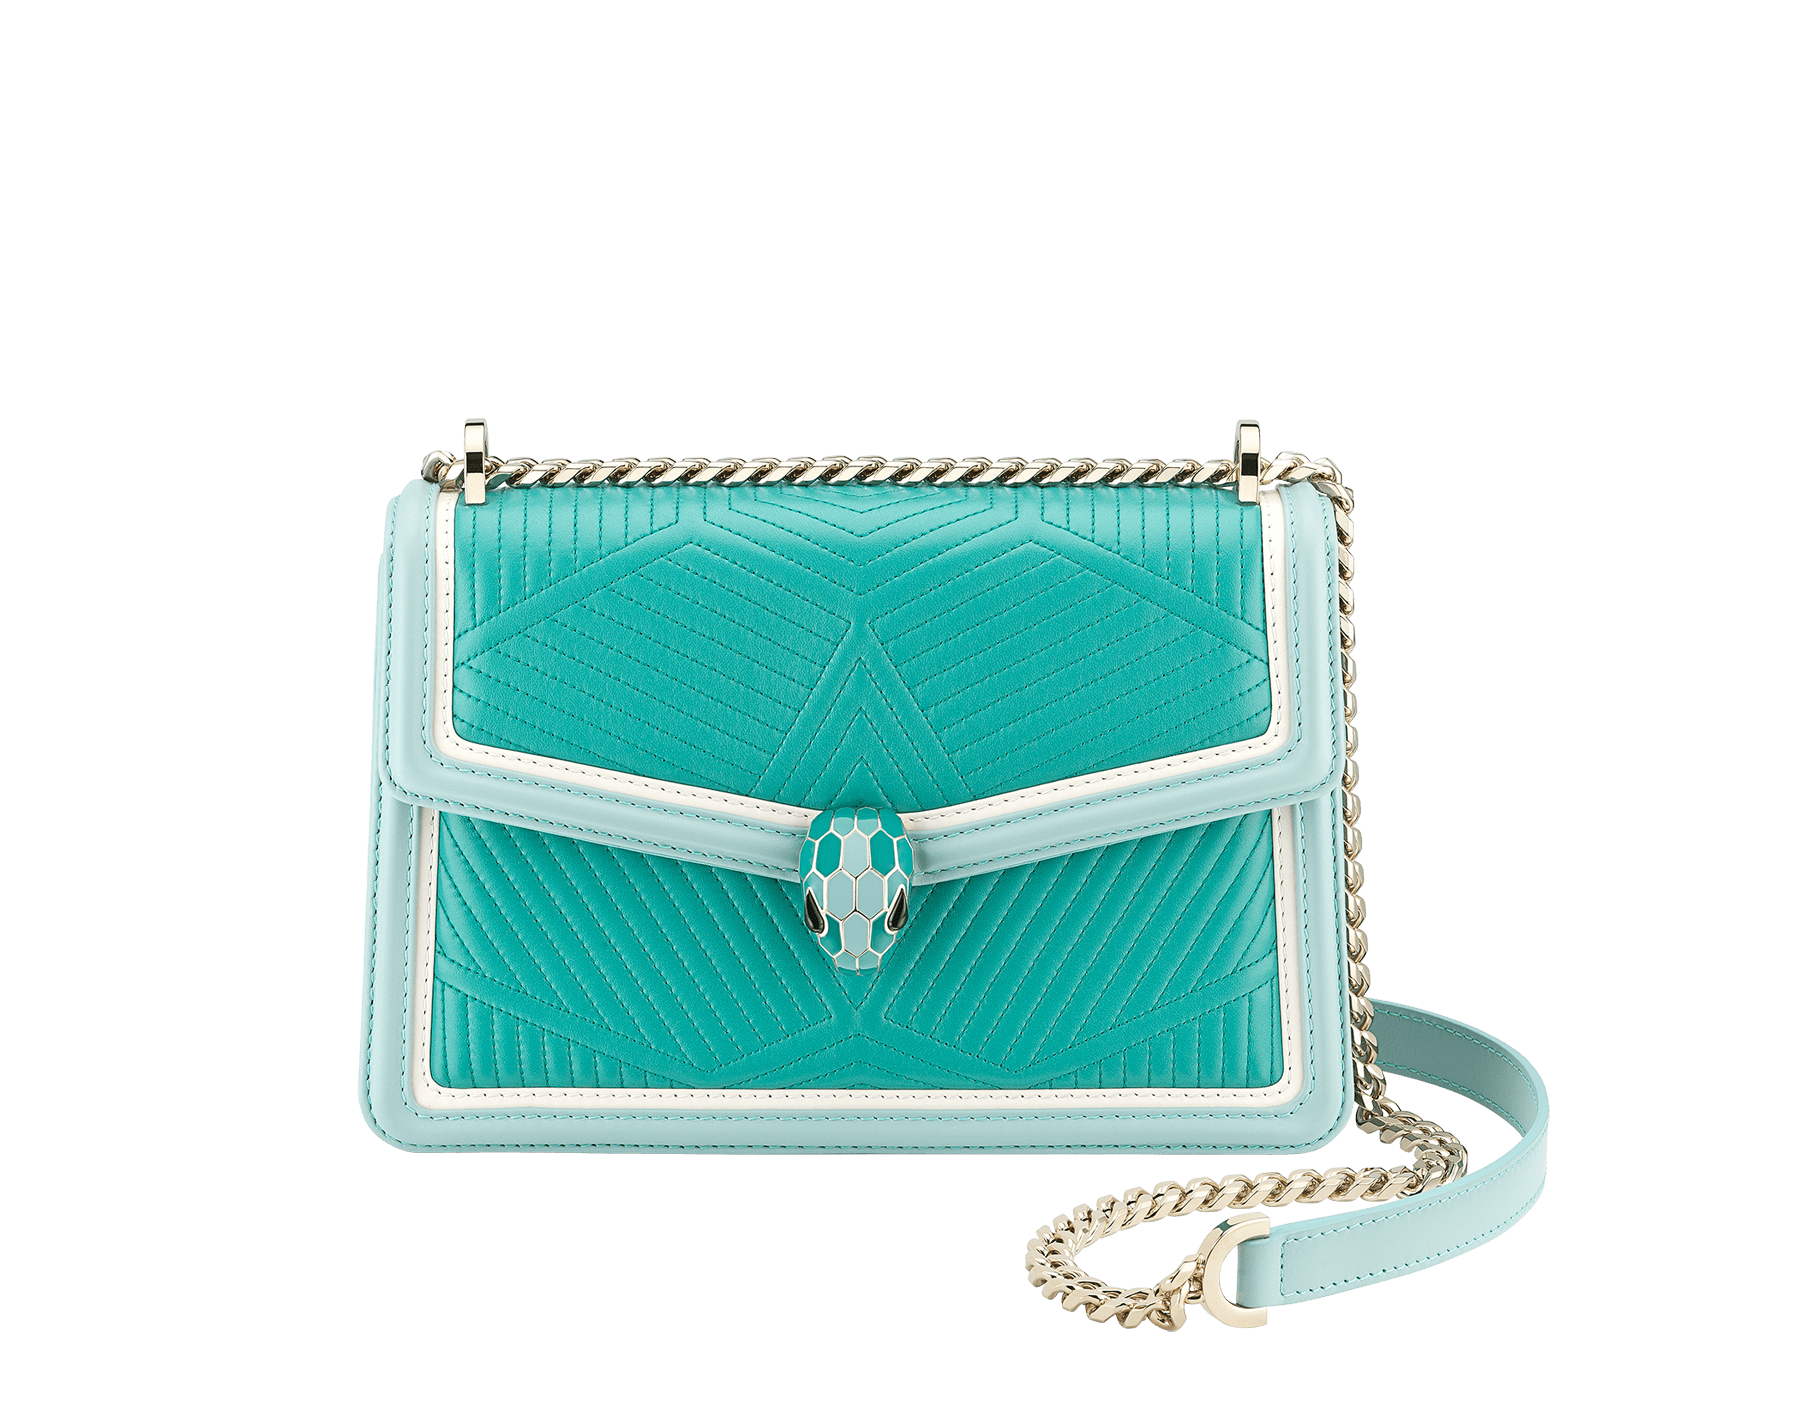 """Serpenti Diamond Blast"" shoulder bag in arctic jade quilted nappa leather and with glacier turquoise and white agate smooth calf leather frames. Iconic snakehead closure in light gold plated brass enriched with arctic jade and glacier turquoise enamel and black onyx eyes. 288824 image 1"